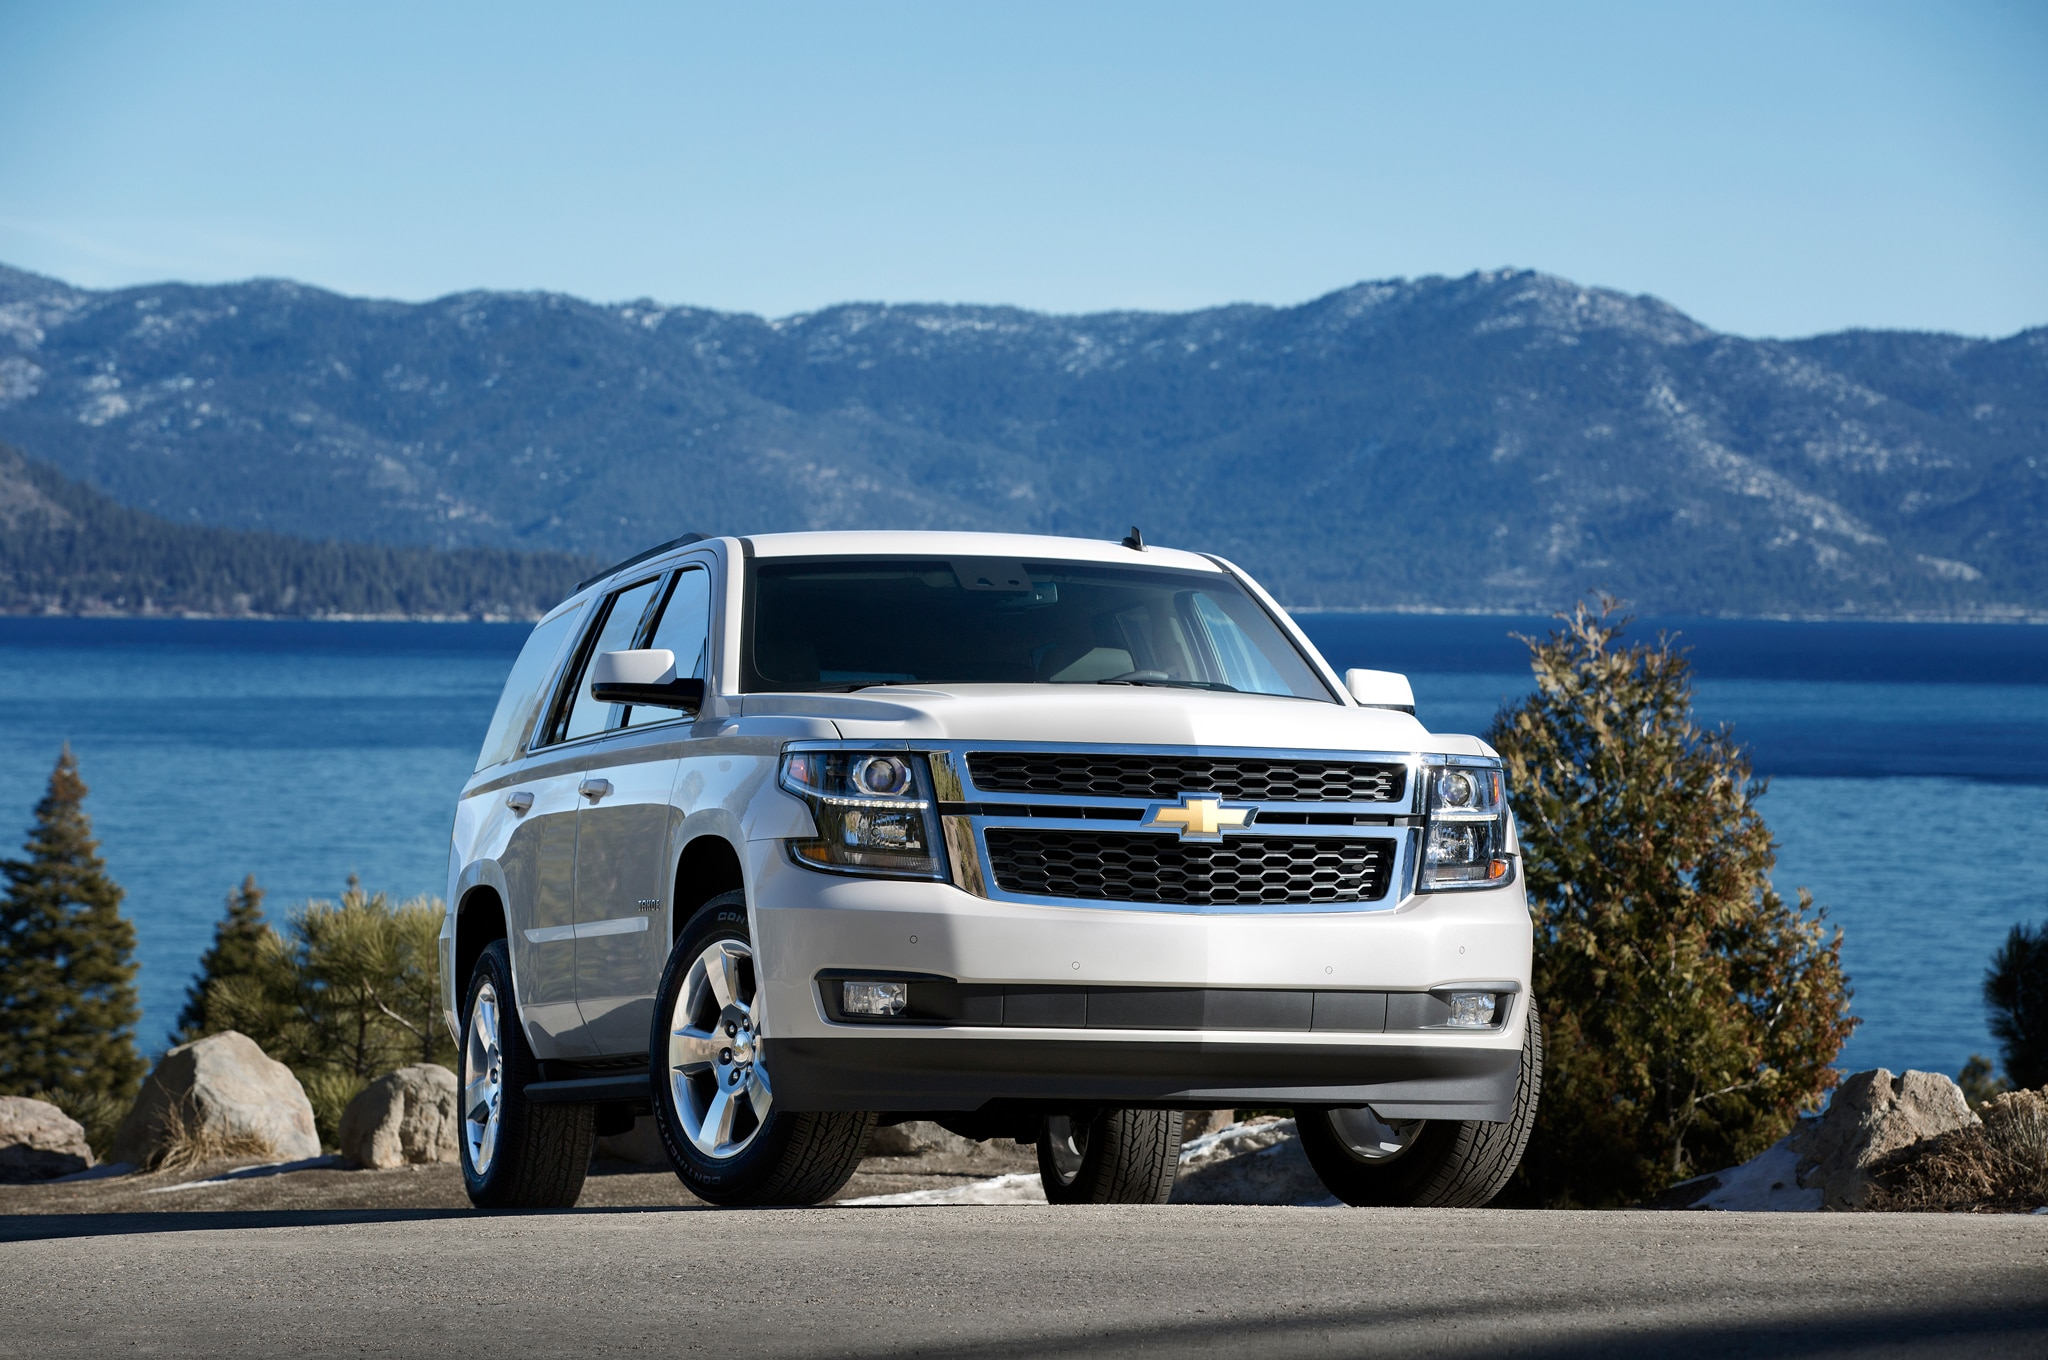 2015 chevrolet suburban and tahoe 2015 gmc yukon and. Black Bedroom Furniture Sets. Home Design Ideas